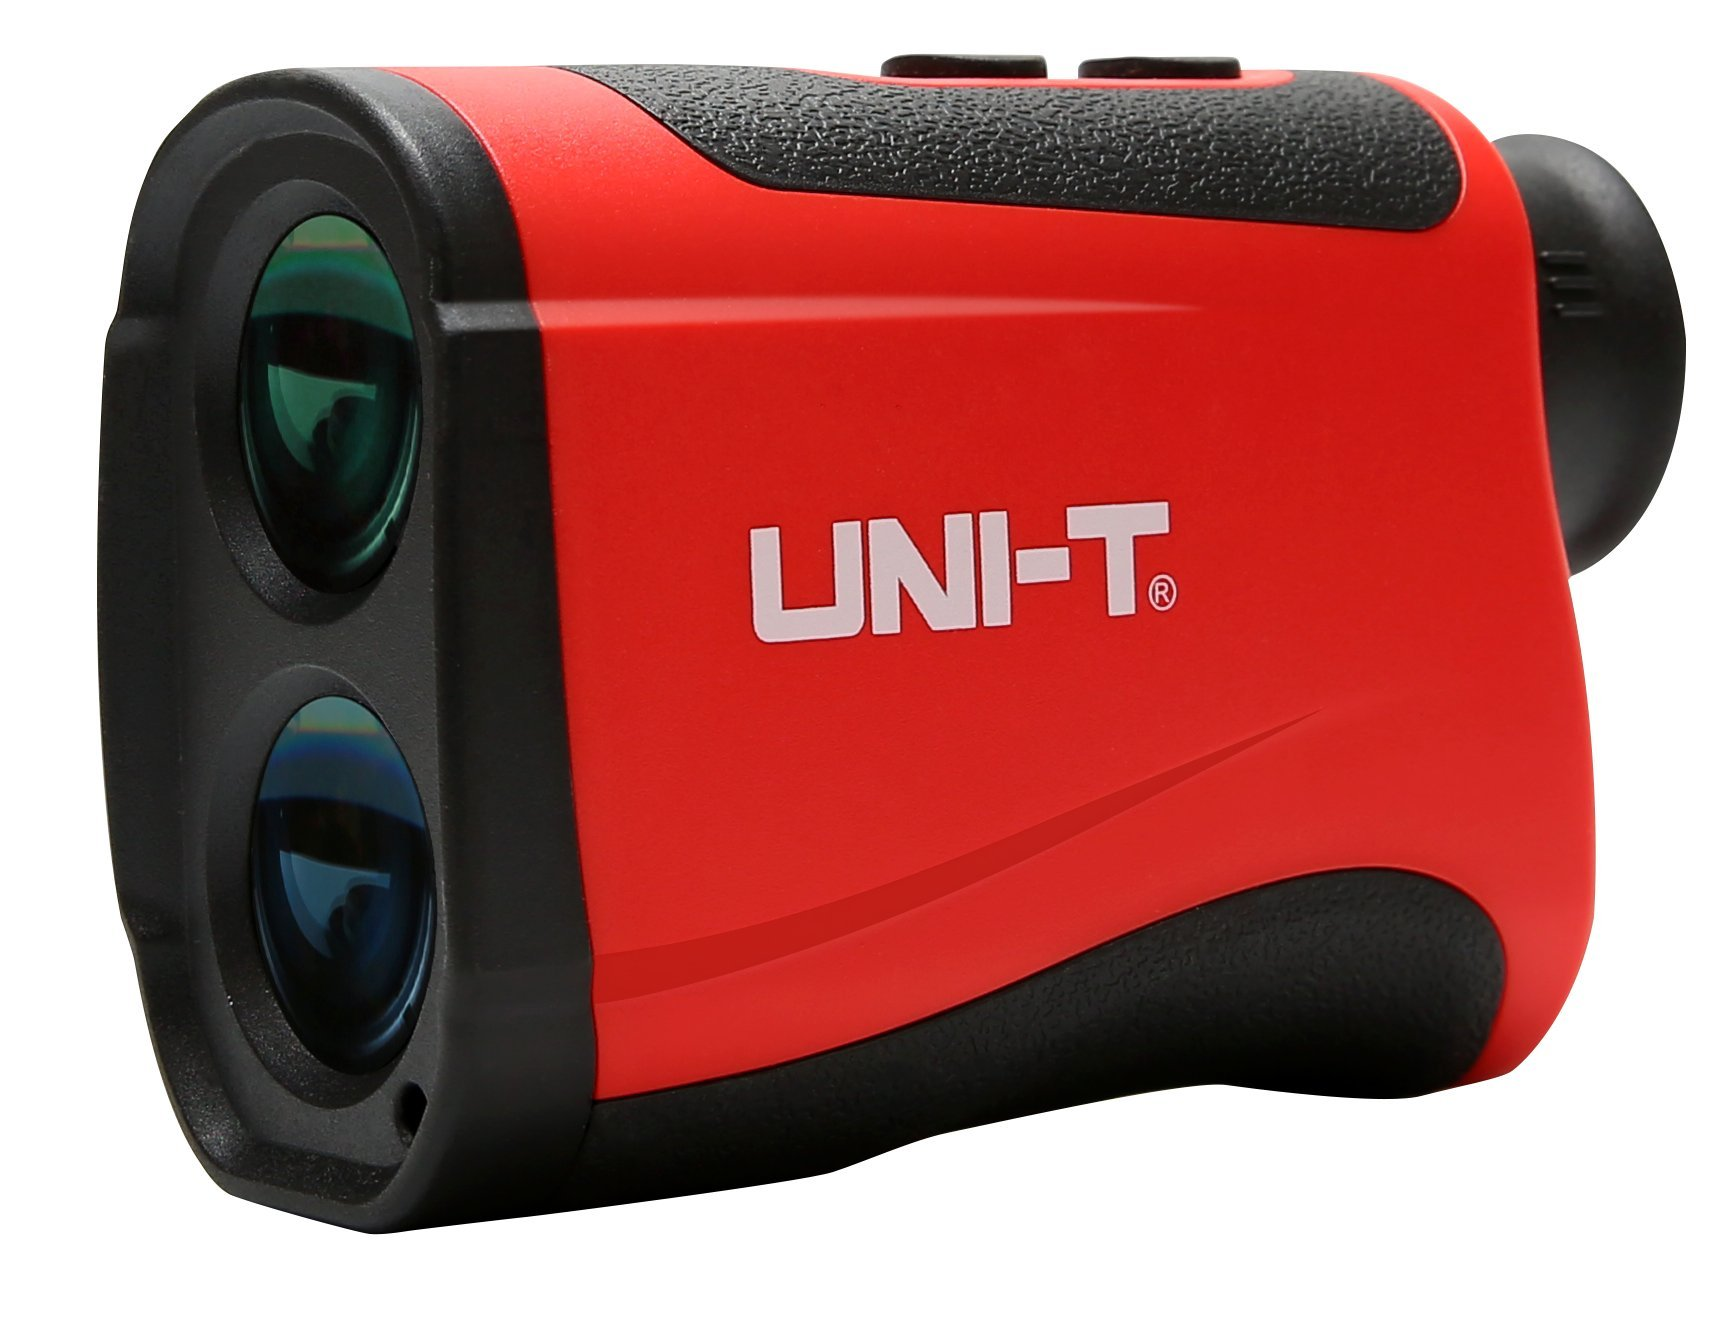 UNI-T Golf Laser Rangefinder, 600 Yards 7X Range finder for Golf, Hunting, outdoors with Speed, Height, Scan, Distance, Angle Measurement range finder